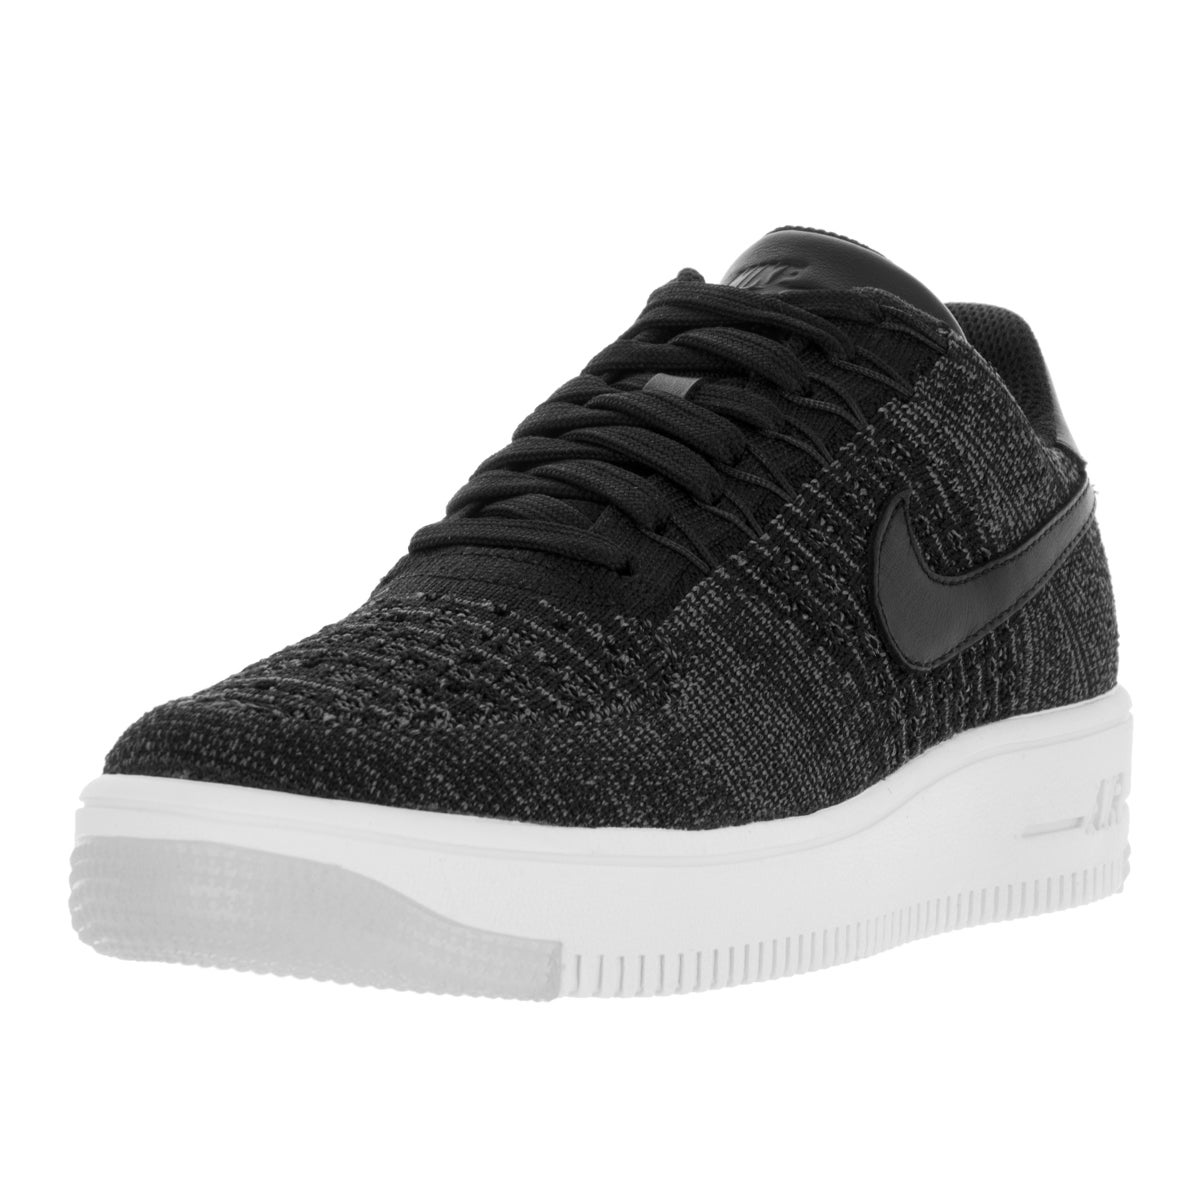 Nike Women's AF1 Flyknit Low Black and White Casual Shoe ...